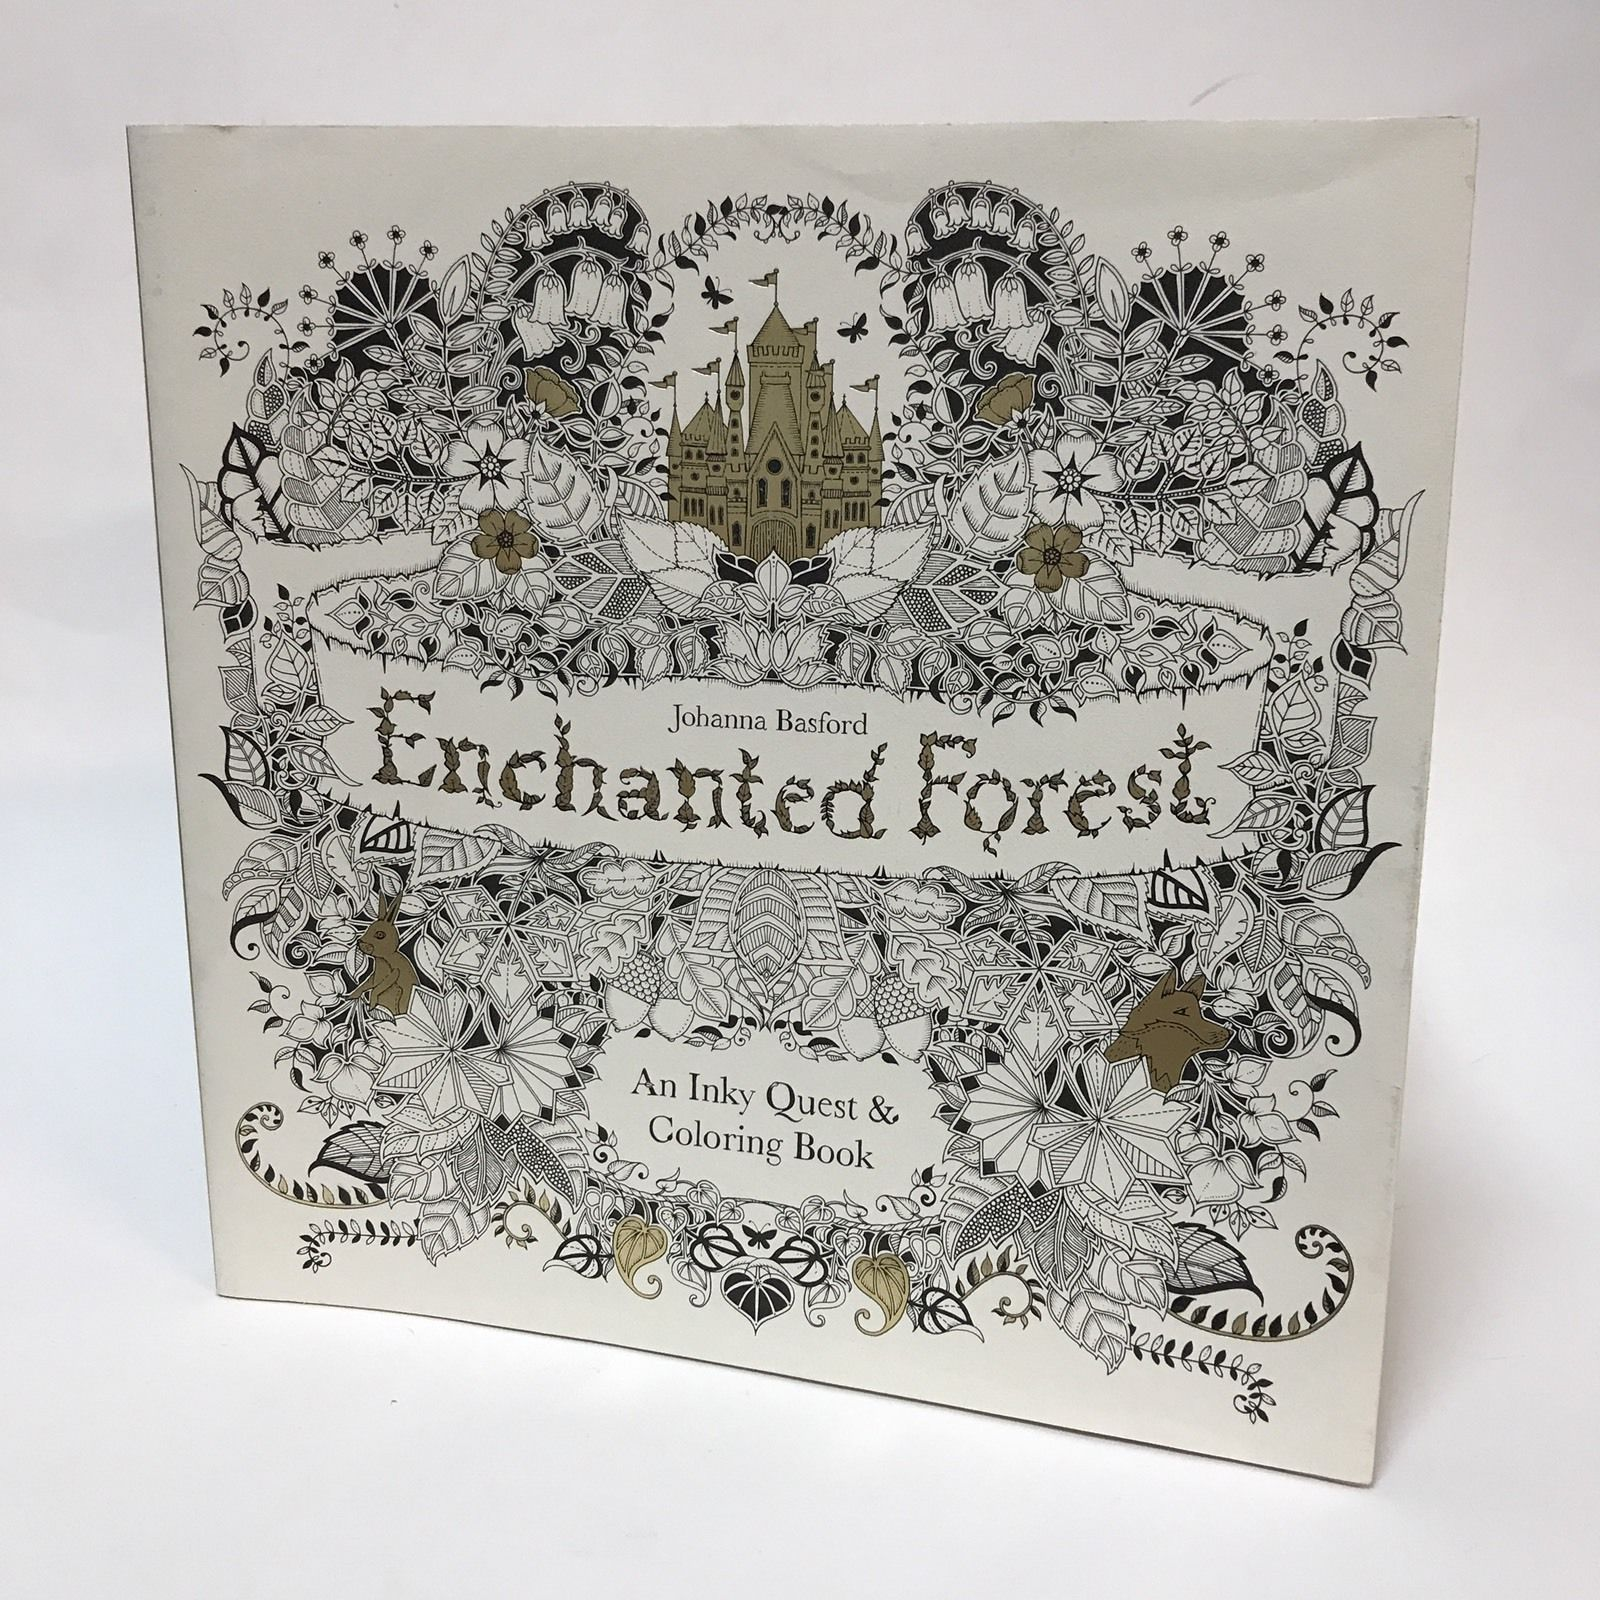 Enchanted Forest An Inky Quest Coloring Book By Johanna Basford 2015 Paperback